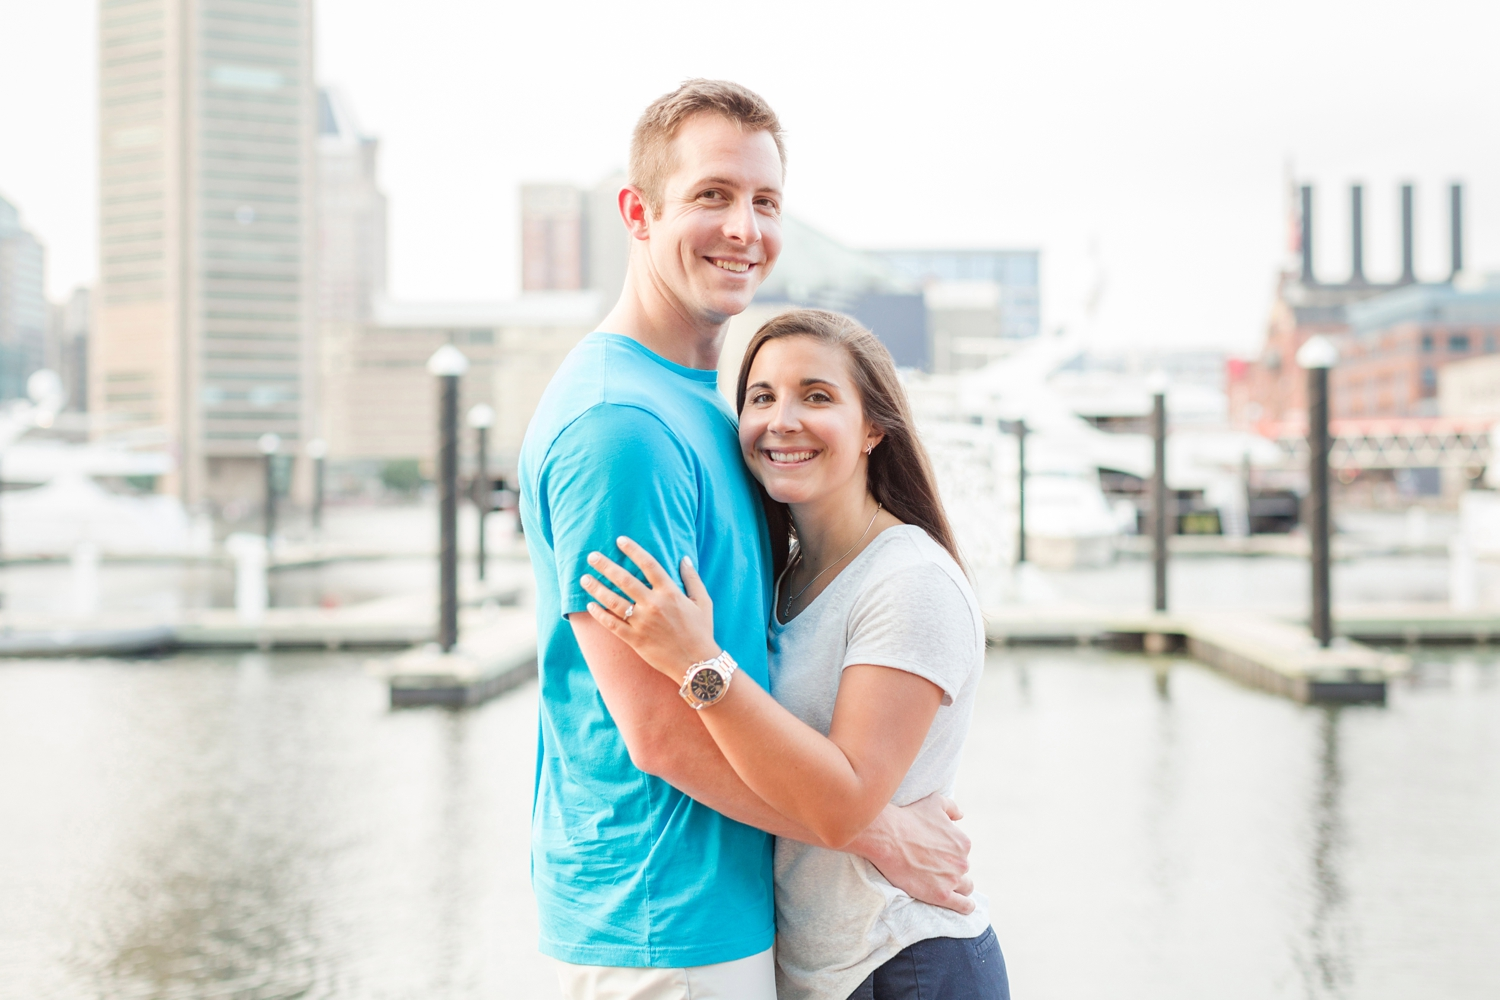 Jamie Wood & Daniel Schindler Engagement-184_Downtown-Baltimore-Maryland-engagement-photographer-anna-grace-photography-photo.jpg